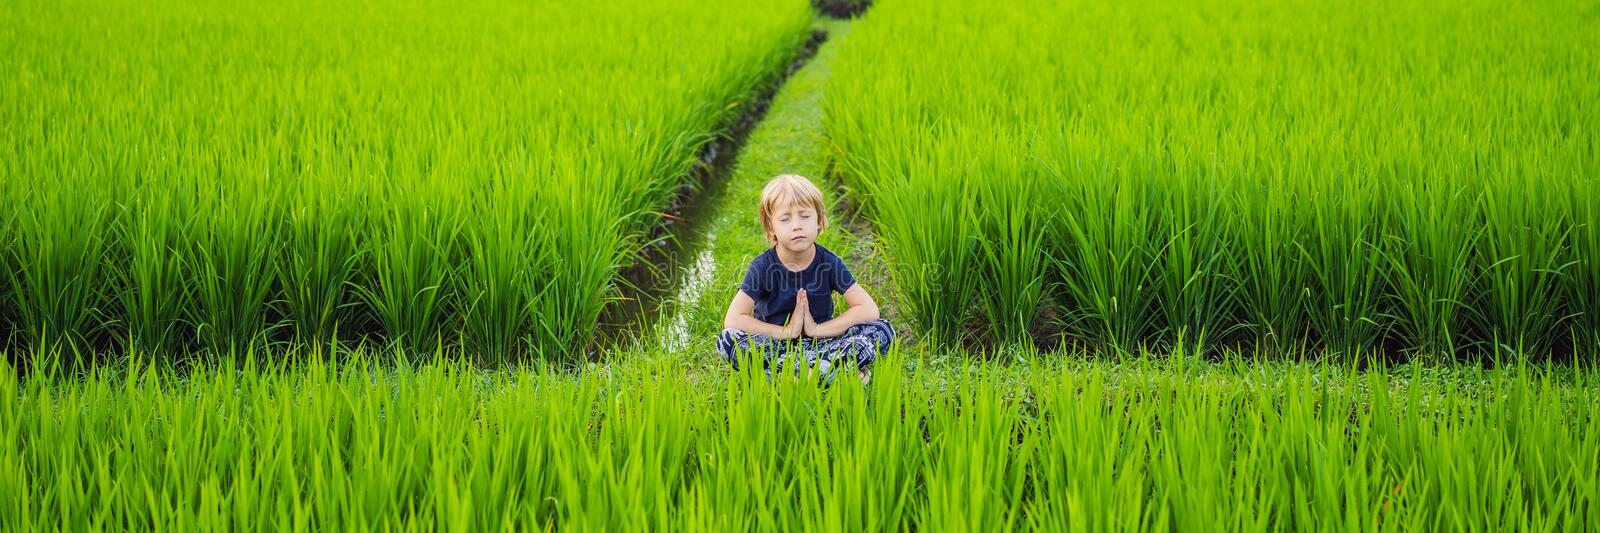 Little boy practices yoga in a rice field, outdoor. Gymnastic exercises BANNER, LONG FORMAT stock photos